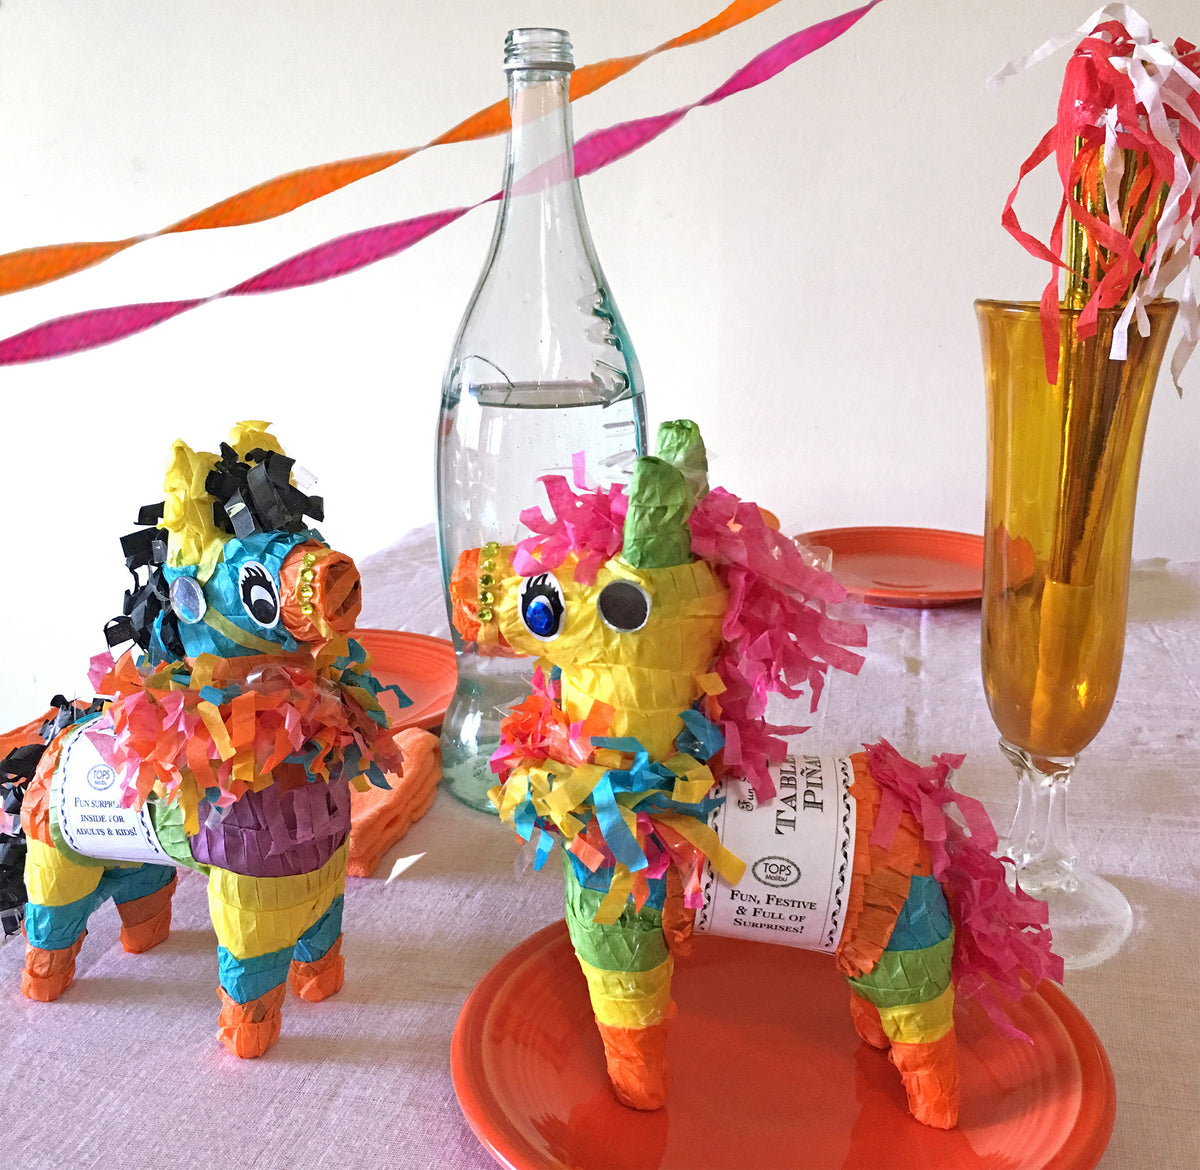 Mini Tabletop Pinata with 6 Prizes - TOPS Malibu